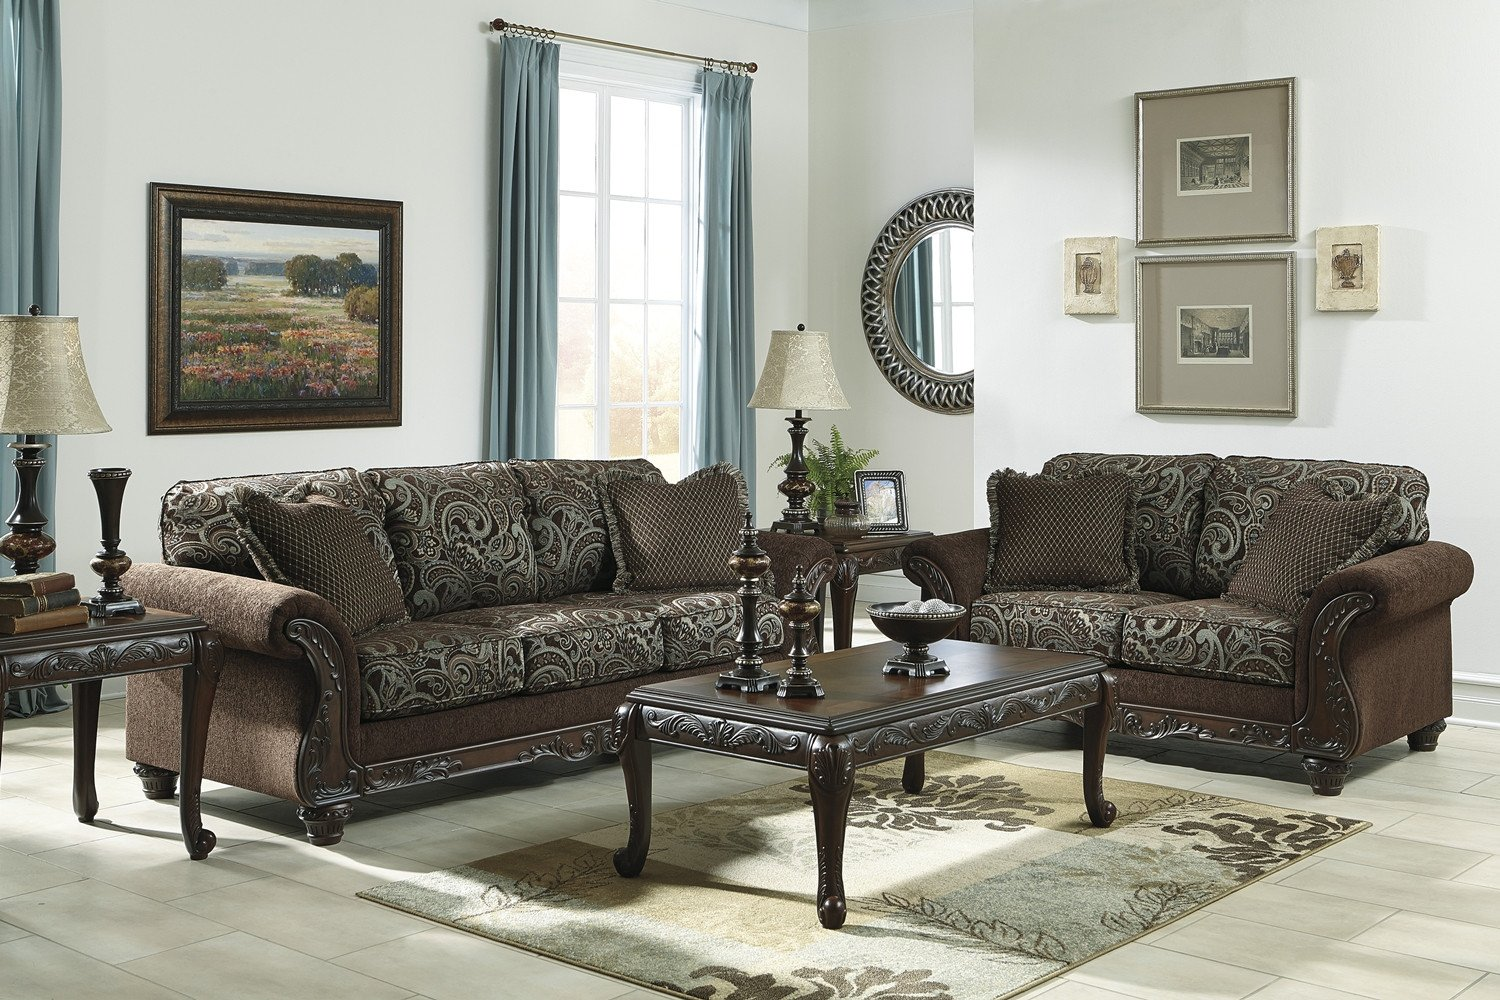 Traditional Living Room Sets Inspirational Traditional Style Brown sofa & Love Seat Living Room Furniture Set